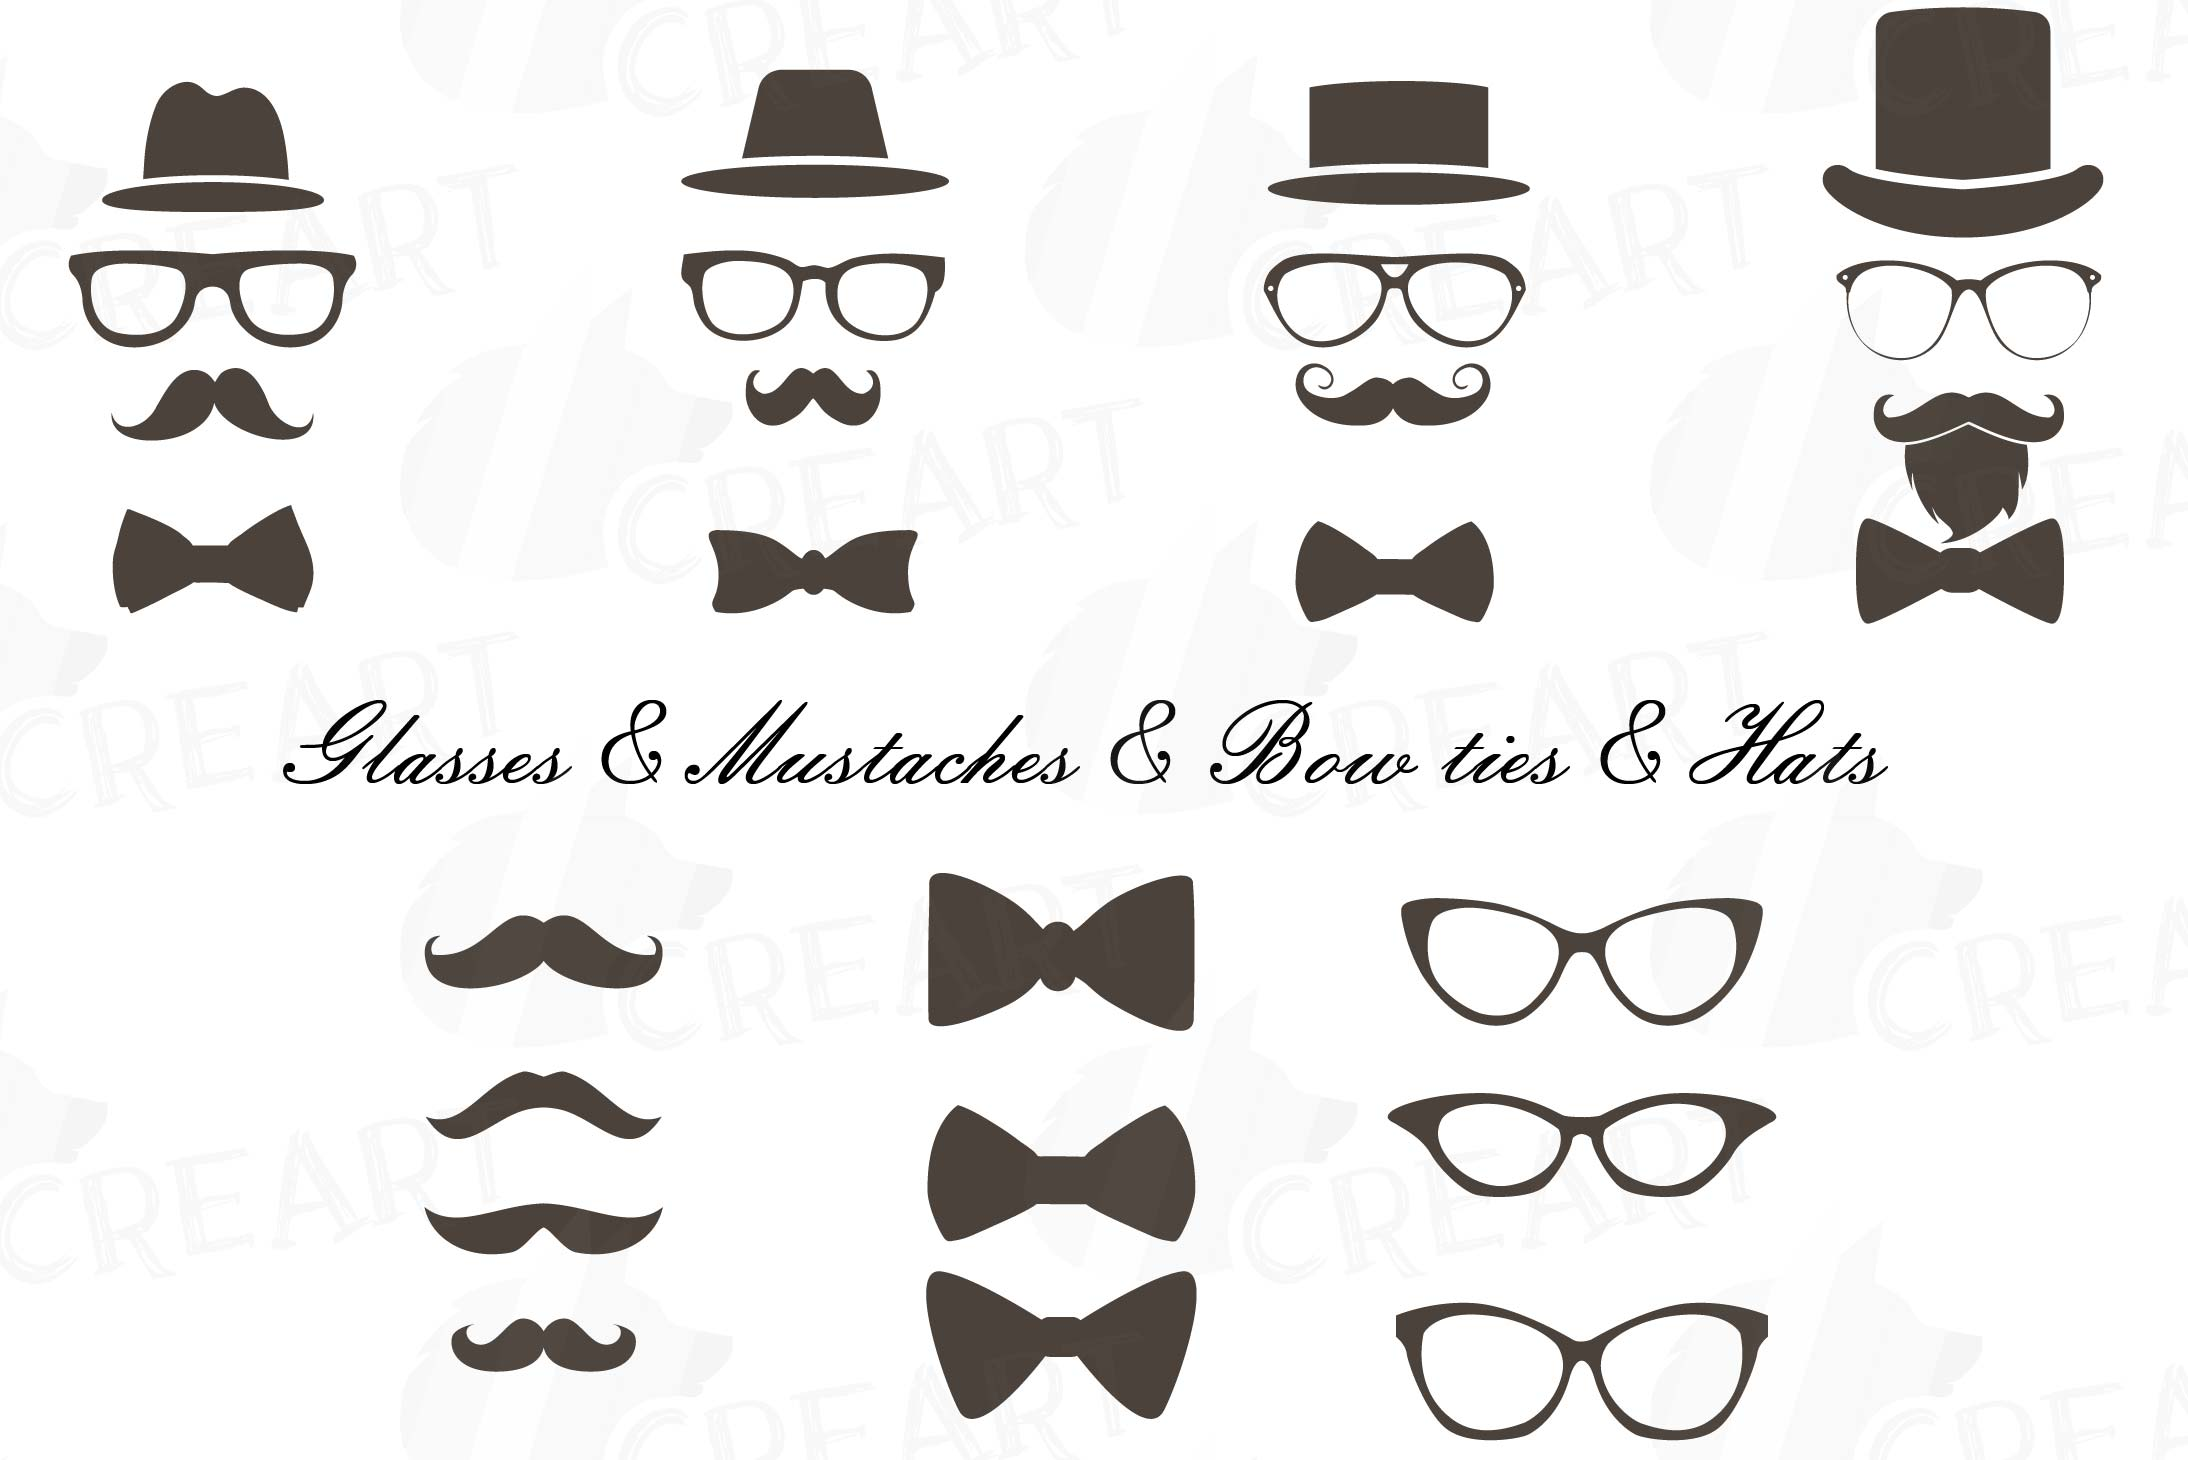 Bowtie clipart hipster. Mustaches hats glass icons